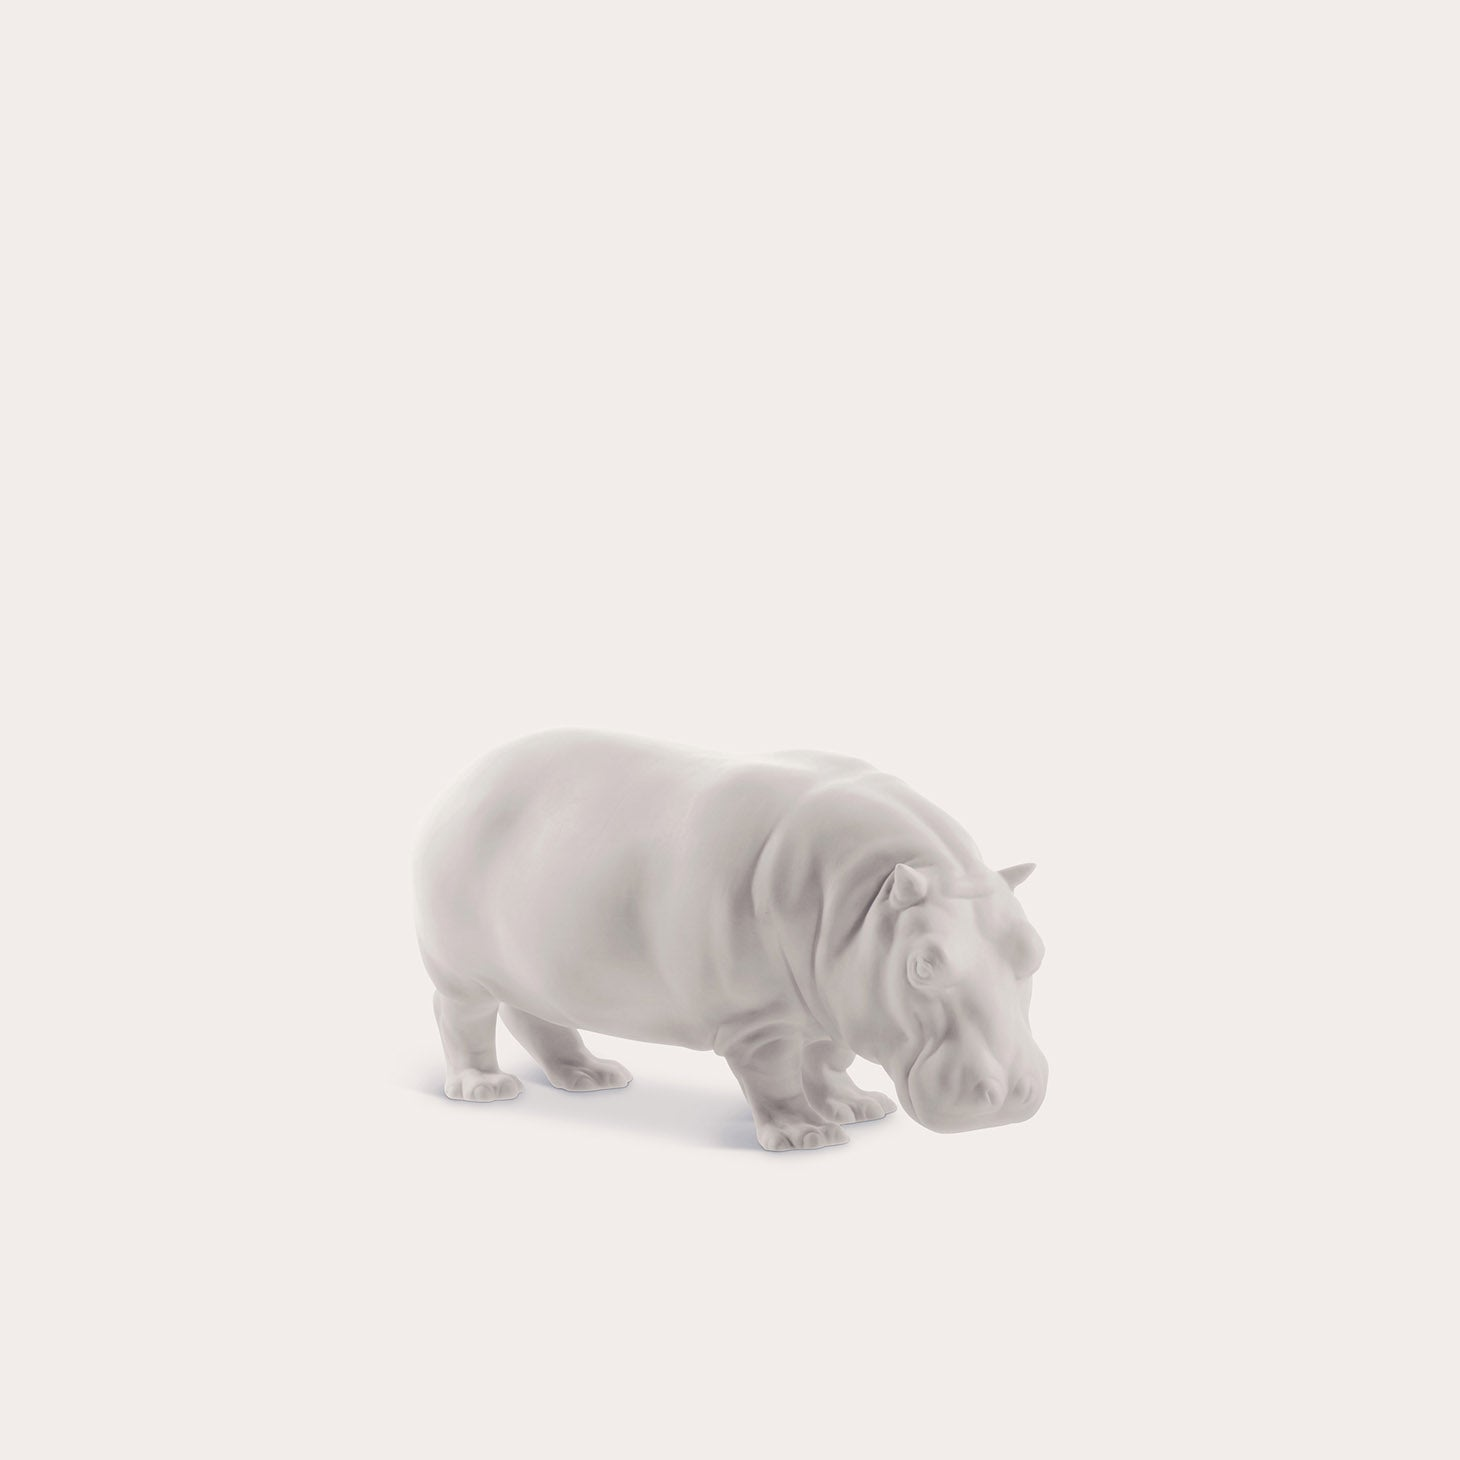 Hippo Accessories Nymphenburg Designer Furniture Sku: 542-100-10223